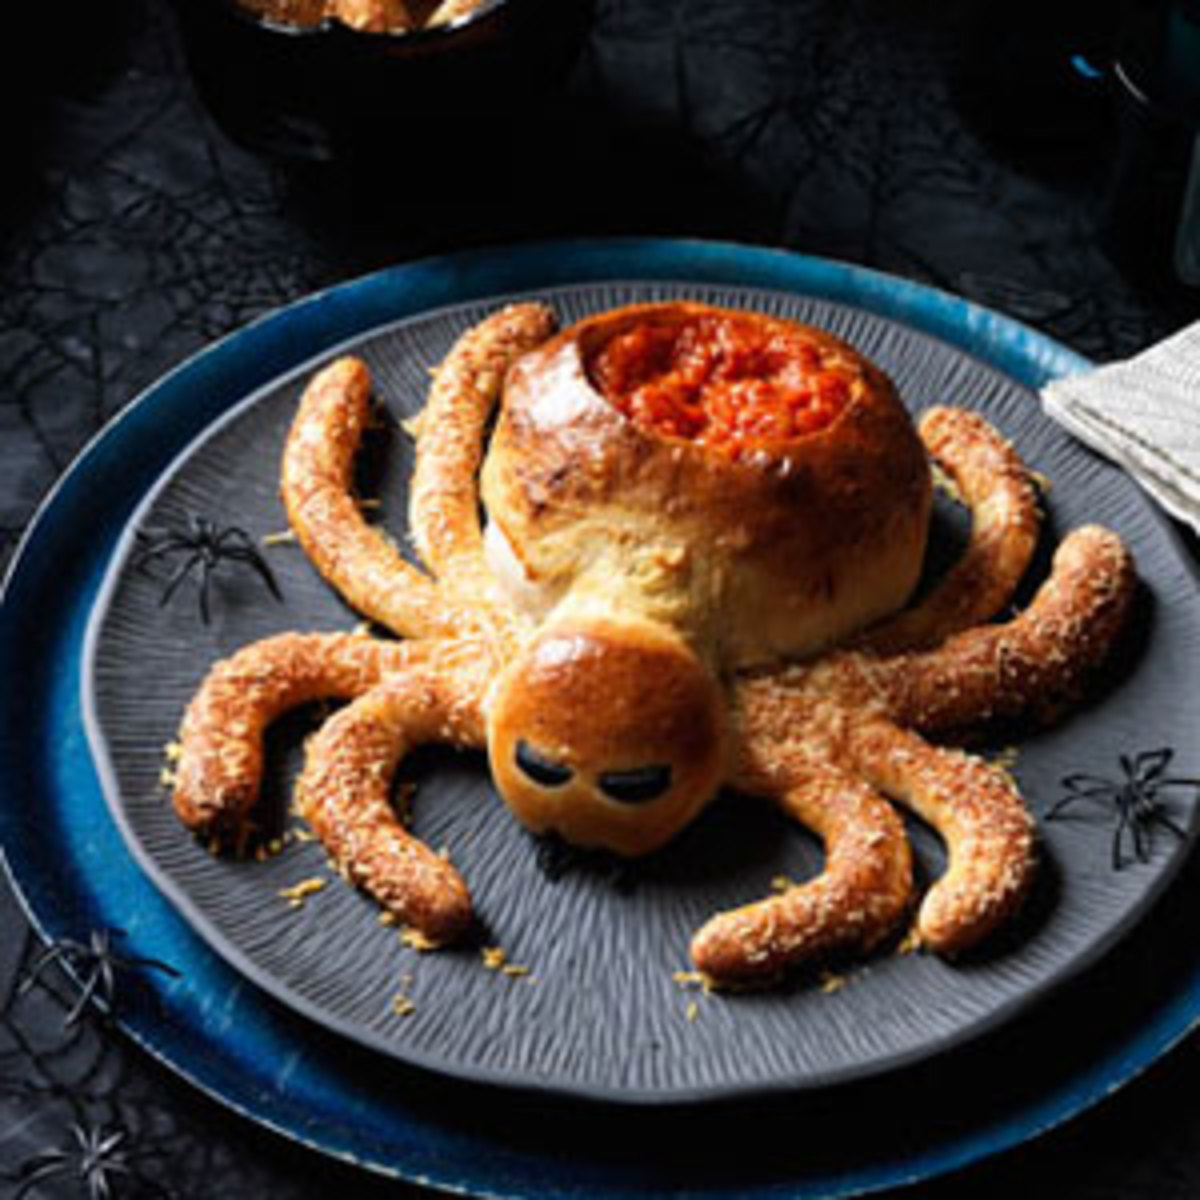 Spider Made From Bread Dough